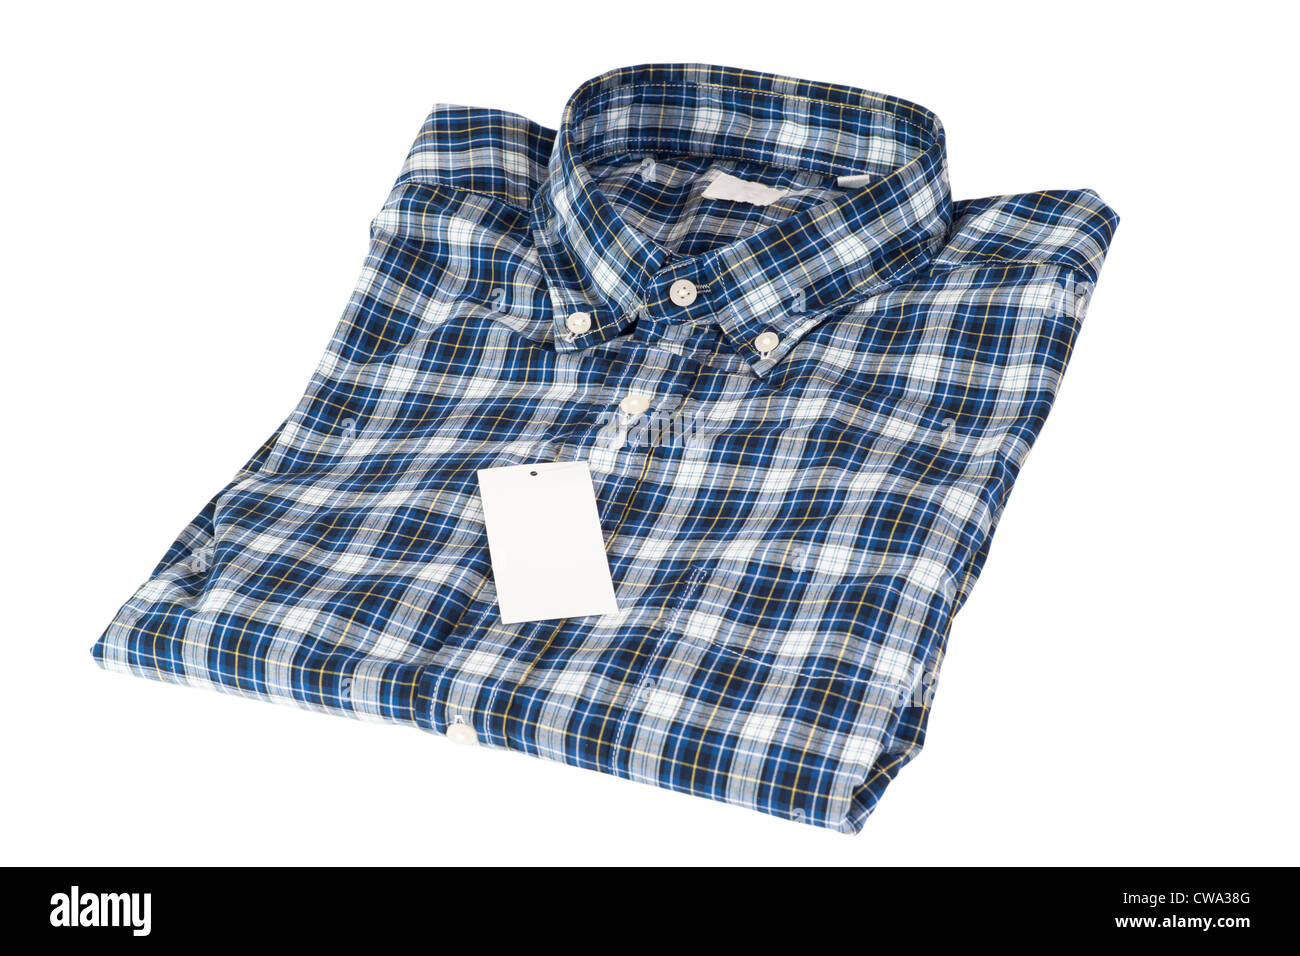 Blue color shirt for men in checked pattern isolate background - Stock Image